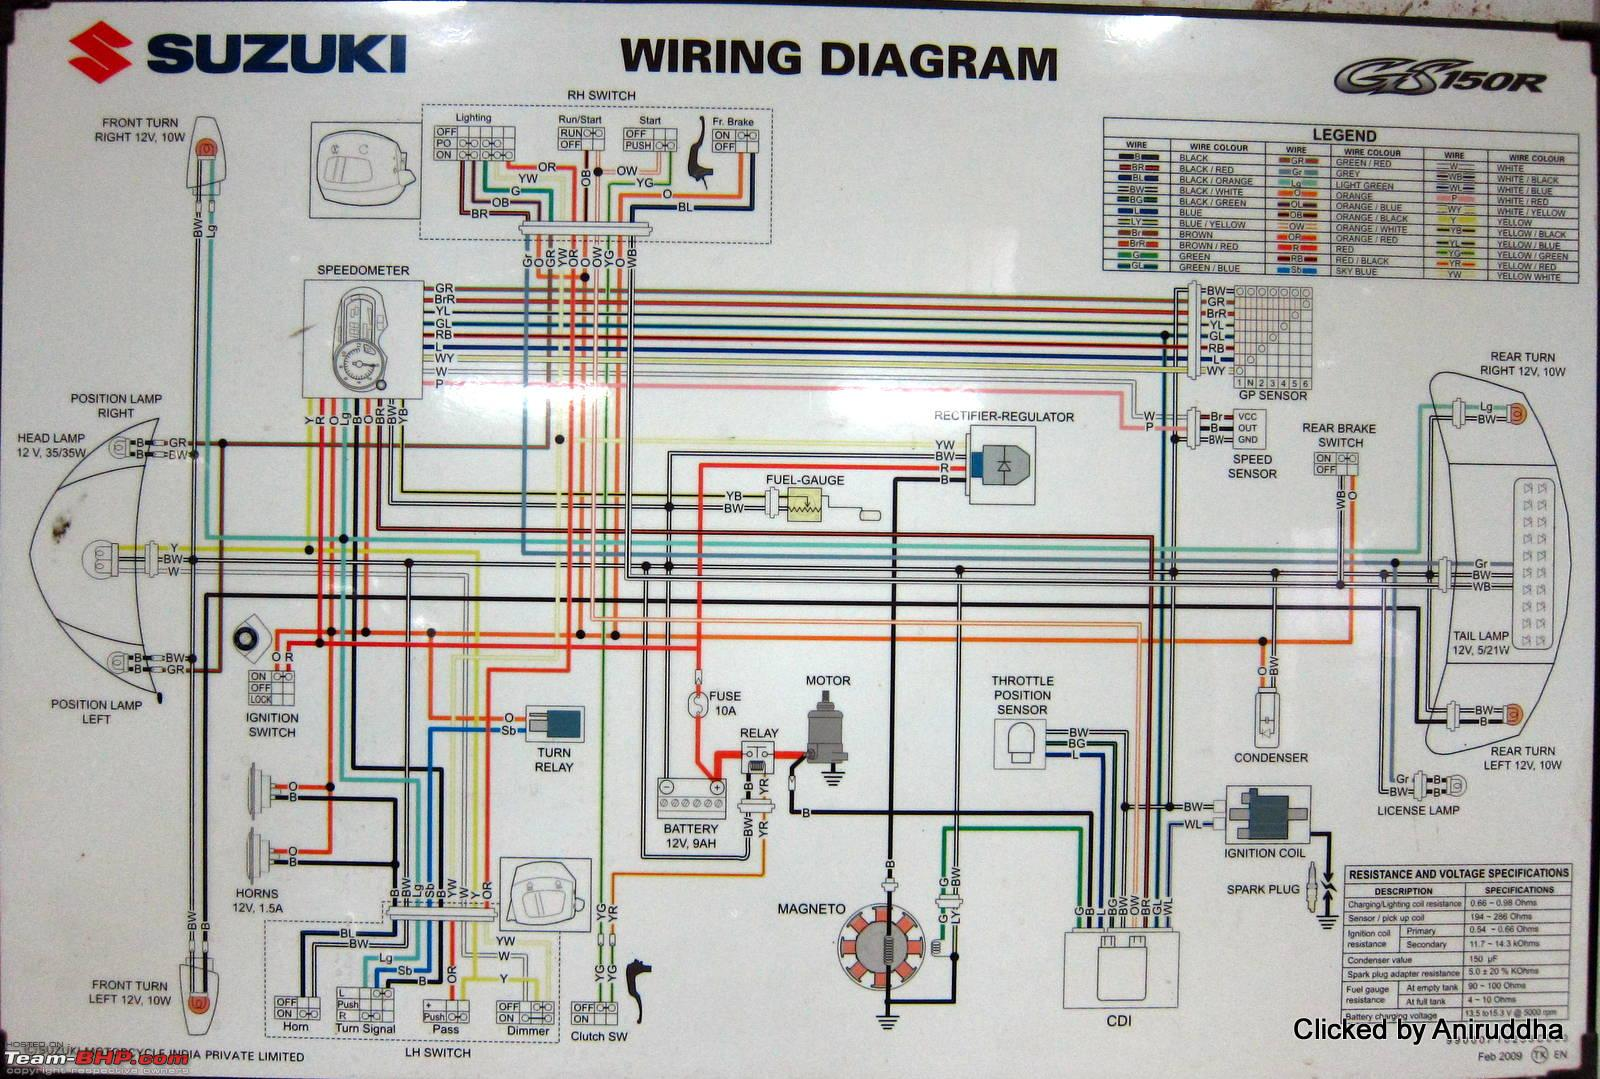 Wiring Diagram Likewise Chinese Scooter Further Honda Ask Answer Images Gallery Electric Moped Engine Get Free Image About Cn250